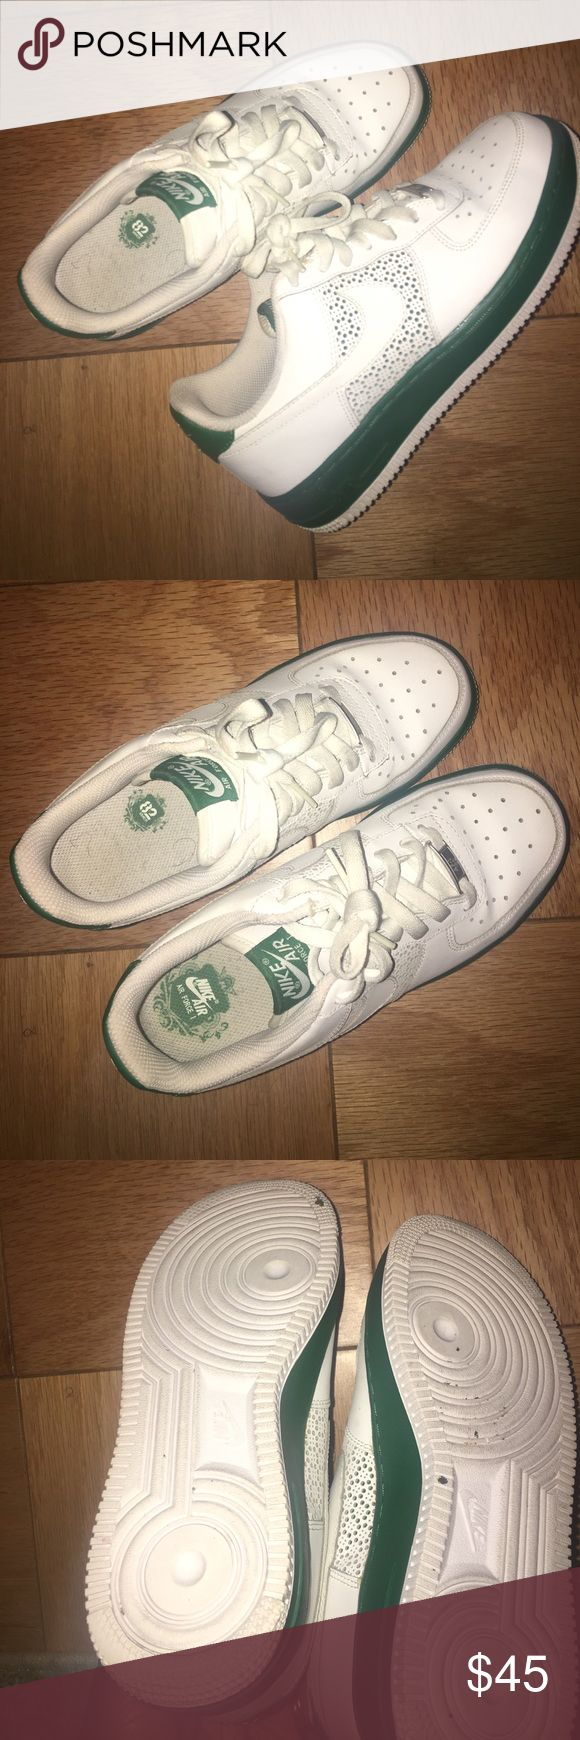 Nikes 👟 for the sneaker heads Green and white Air Force Ones for those who live a good throwback sneaker!!!! Comfy and only worn twice these shoes deserve a new home with someone who will appreciate them!!! These are a size 6 in boys!!! Nike Shoes Sneakers